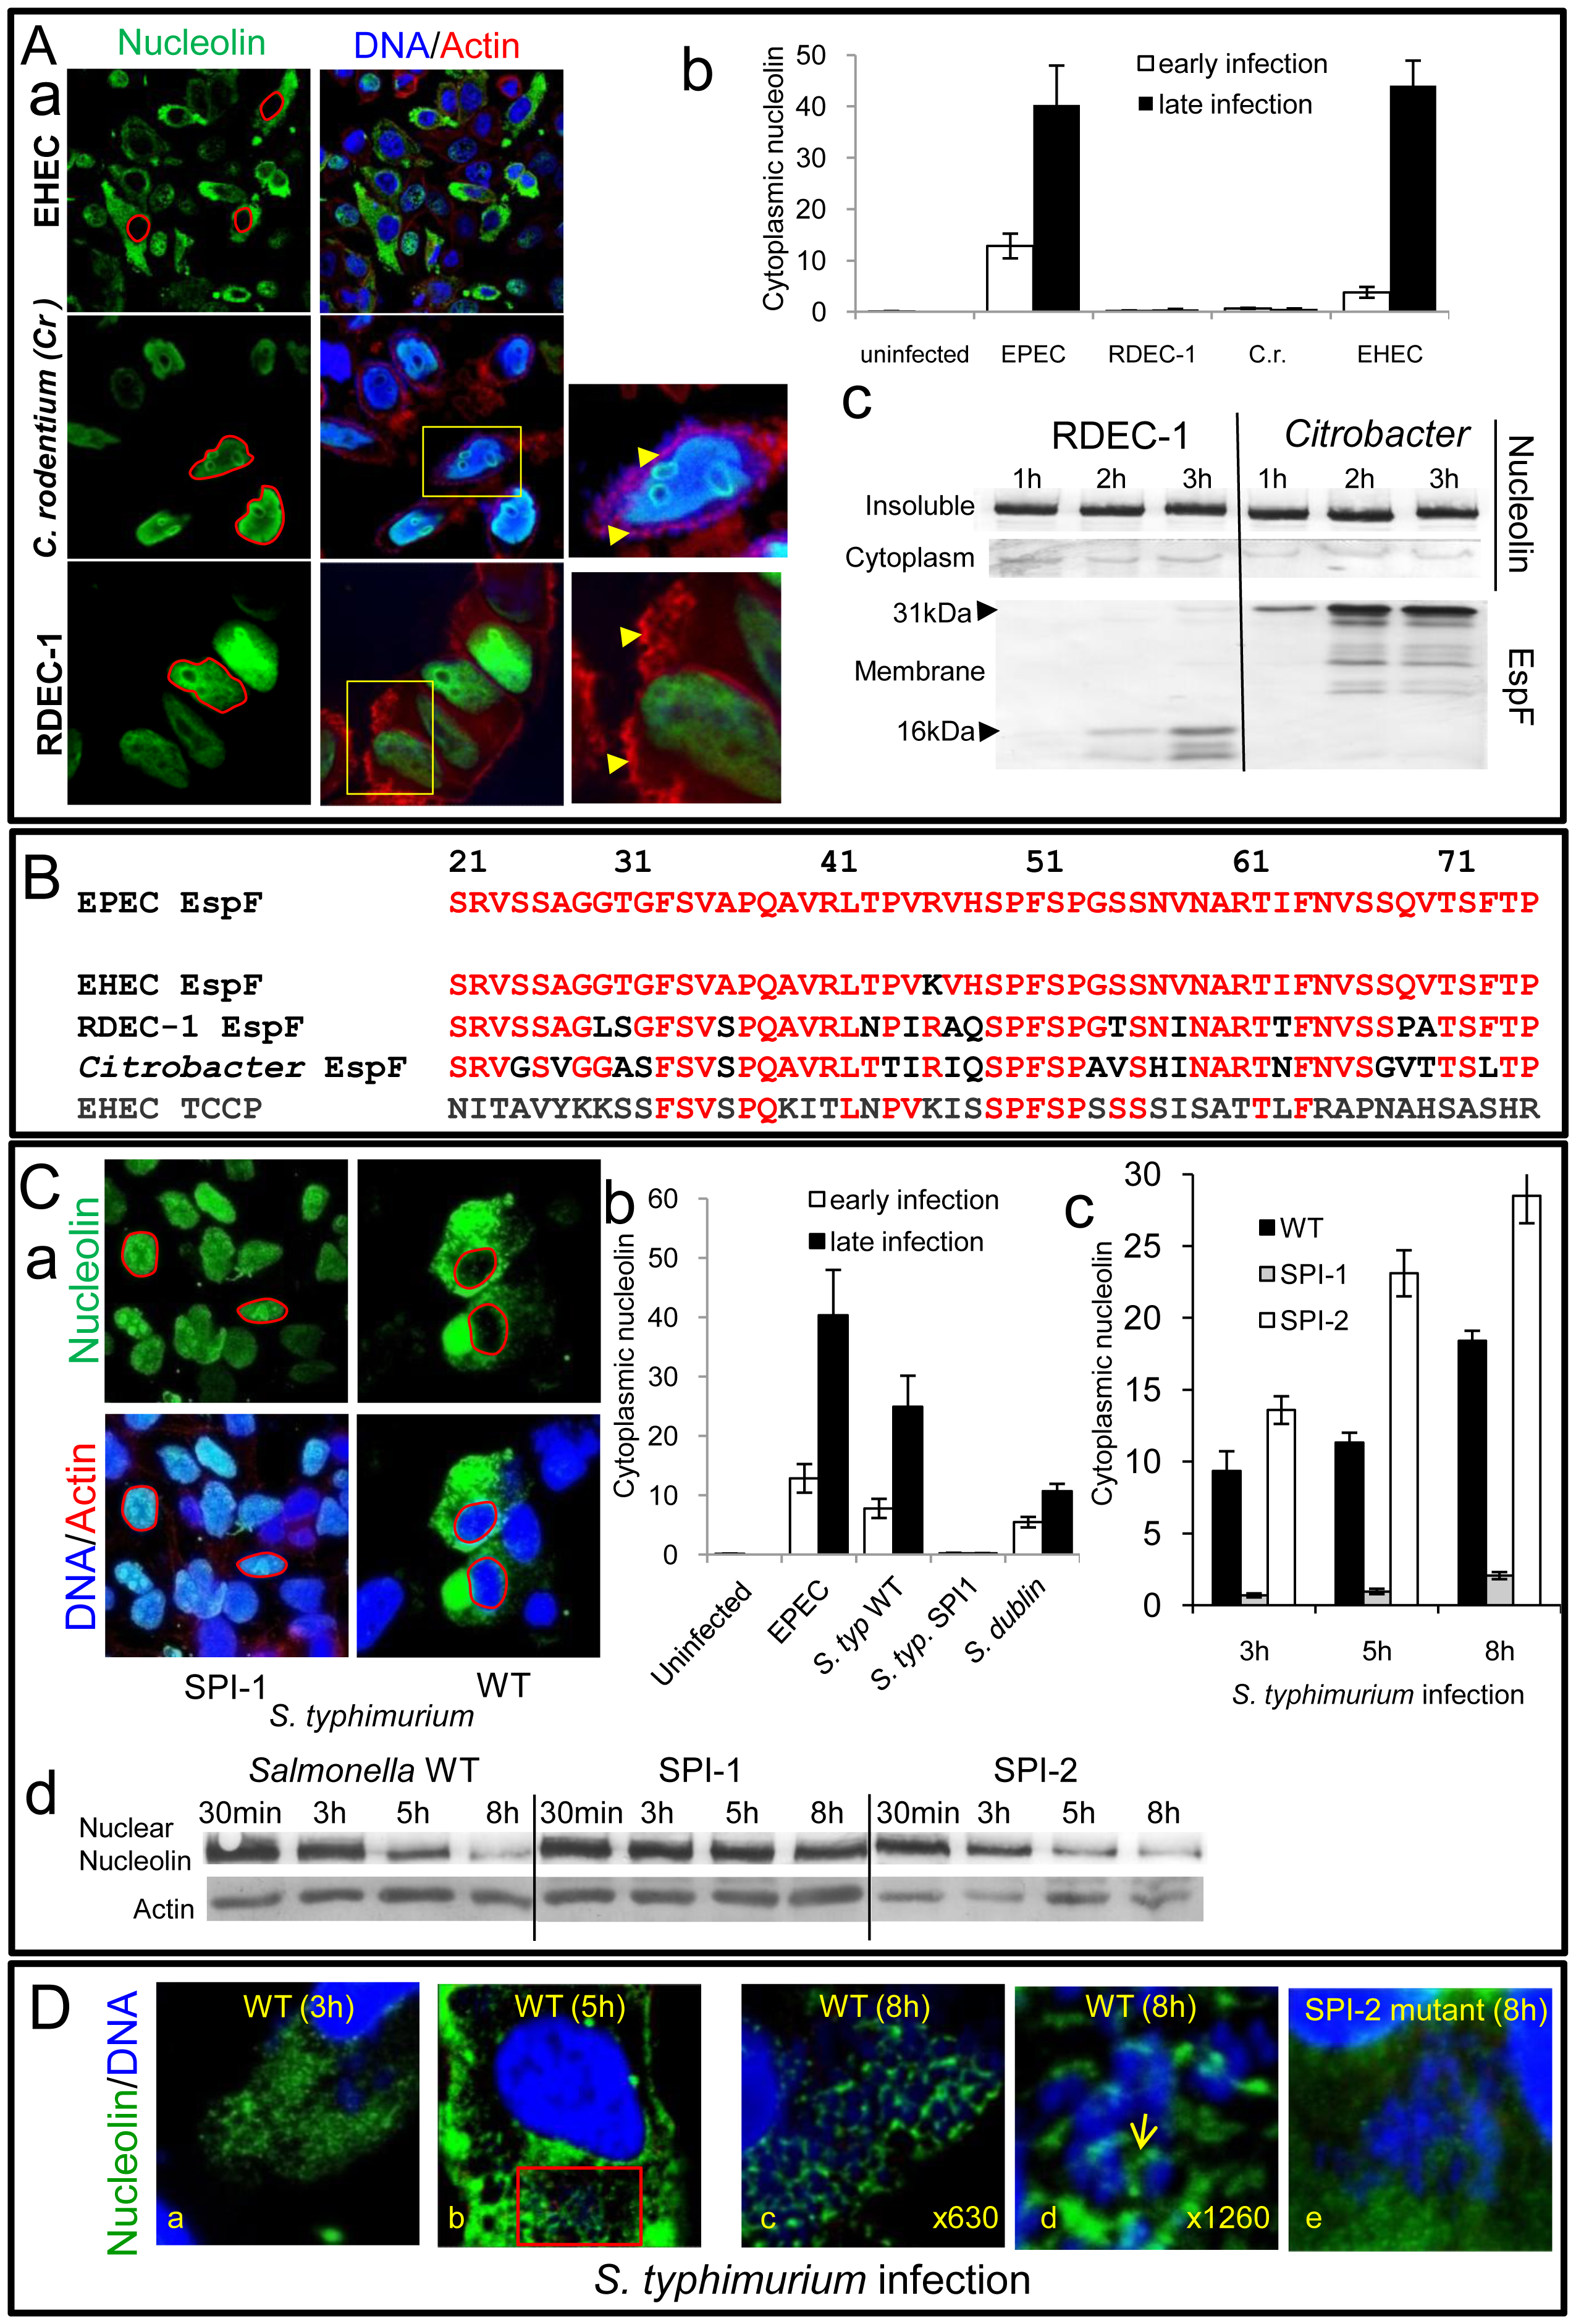 Nucleolin is mobilised by other bacterial pathogens dependent on effector delivery.